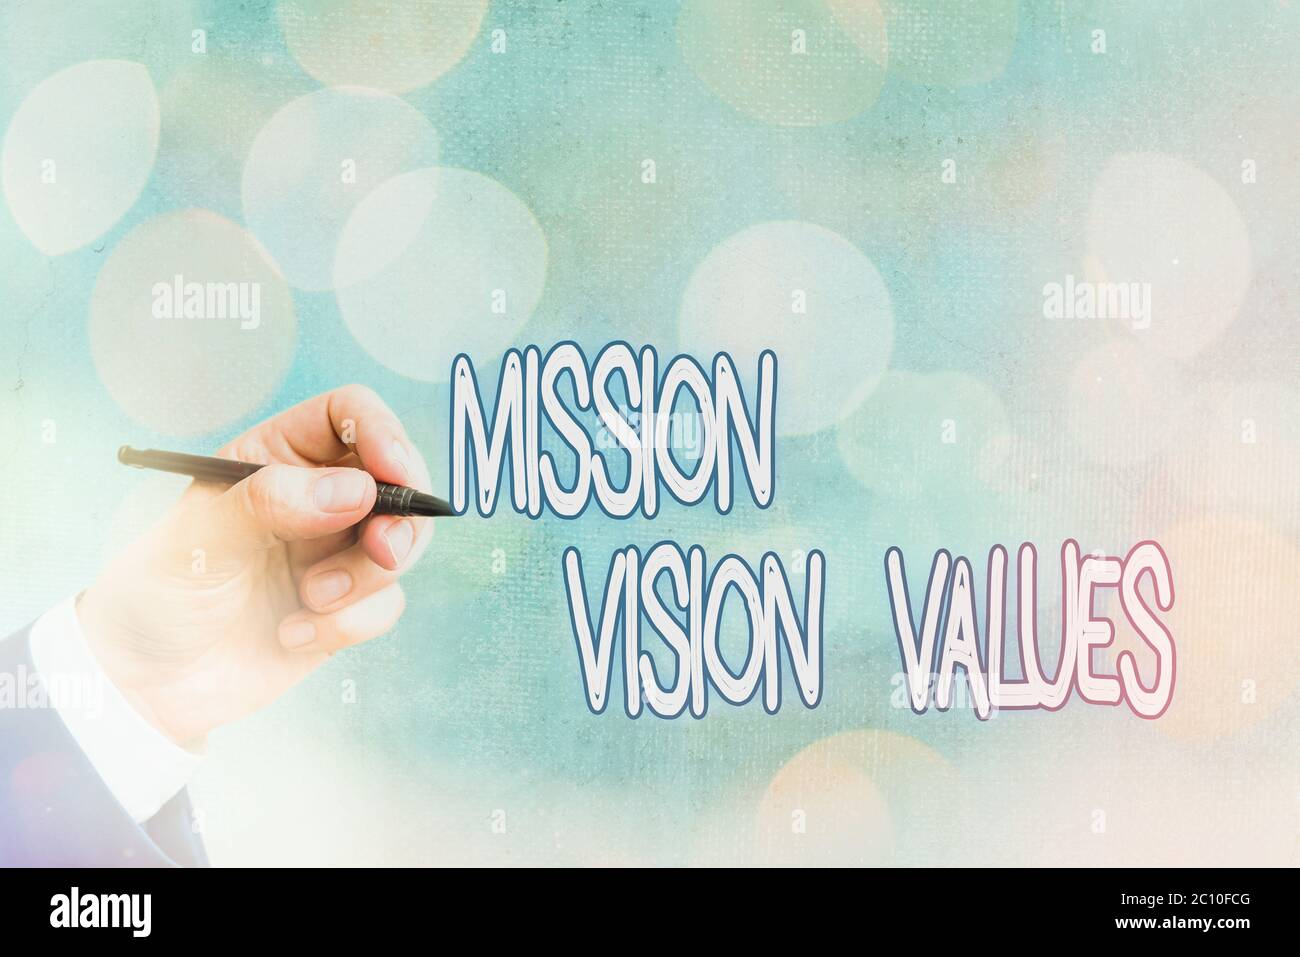 Conceptual Hand Writing Showing Mission Vision Values Concept Meaning Company Business Profile Goal And Care Statement Stock Photo Alamy